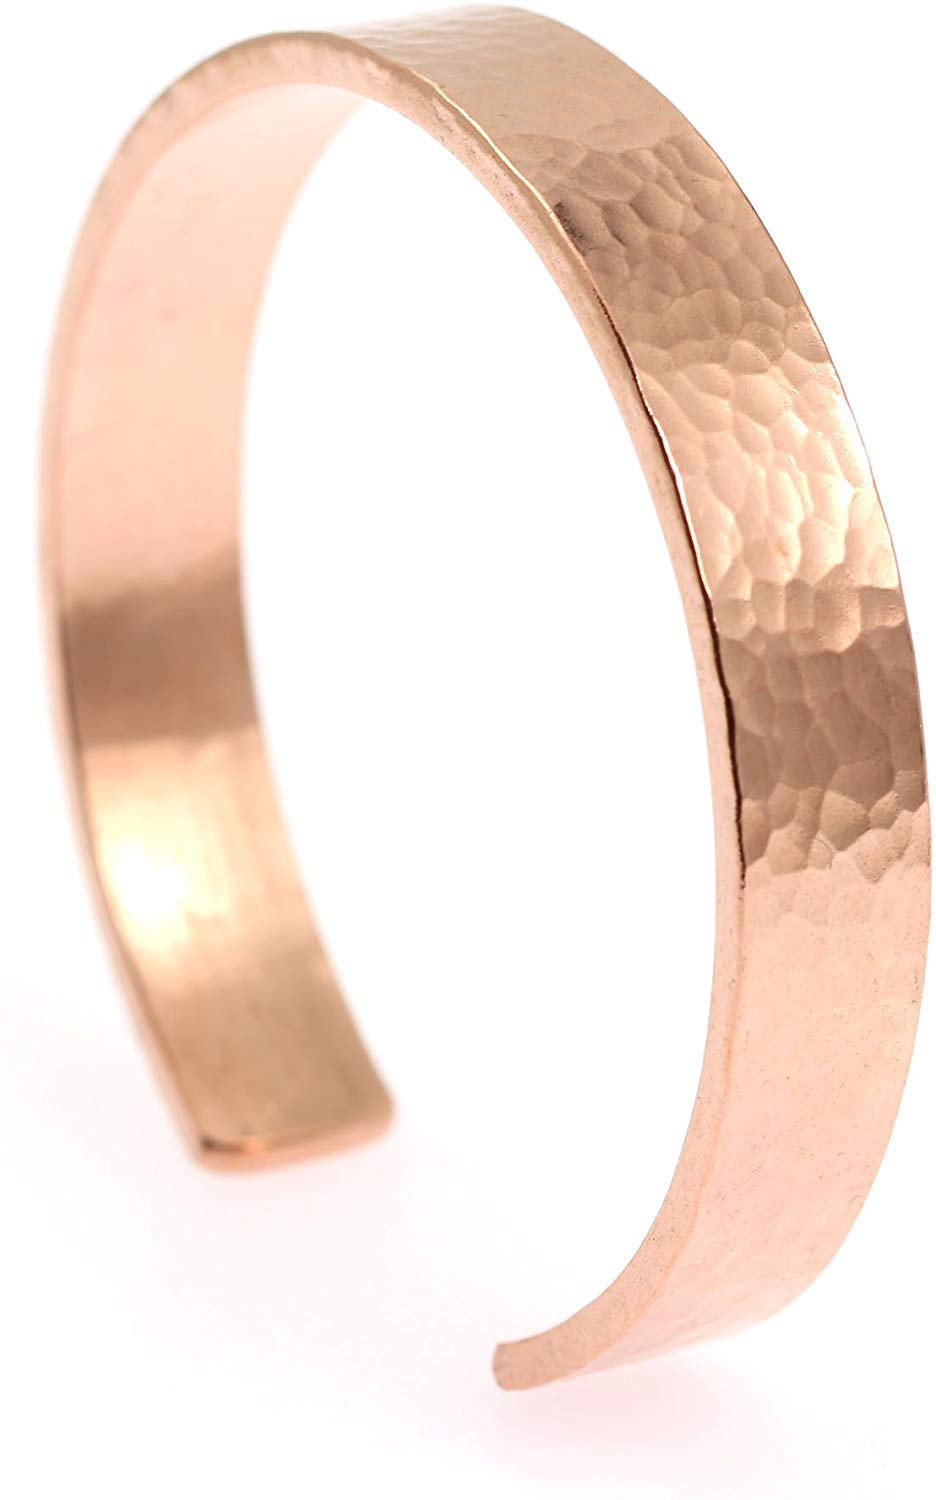 10mm Wide Hammered Copper Cuff Bracelet by John Brana Handmade Jewelry 100% Uncoated Solid Copper Cuff